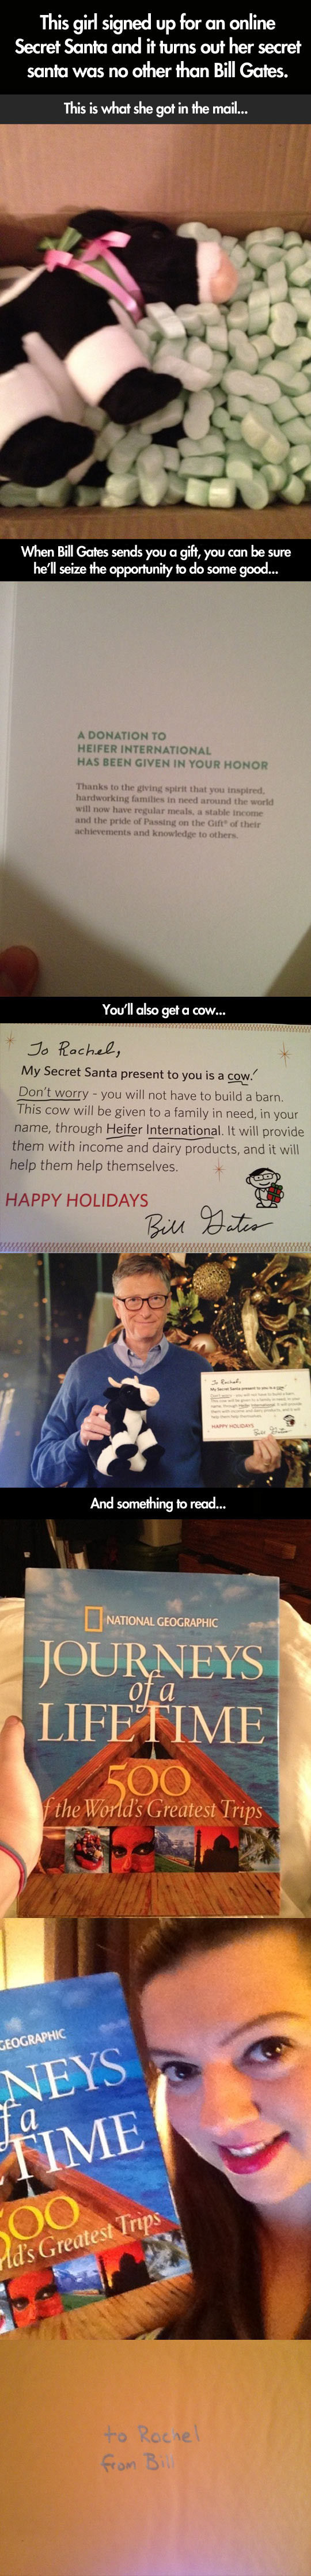 funny-gift-secret-cow-book-Billy-Gates